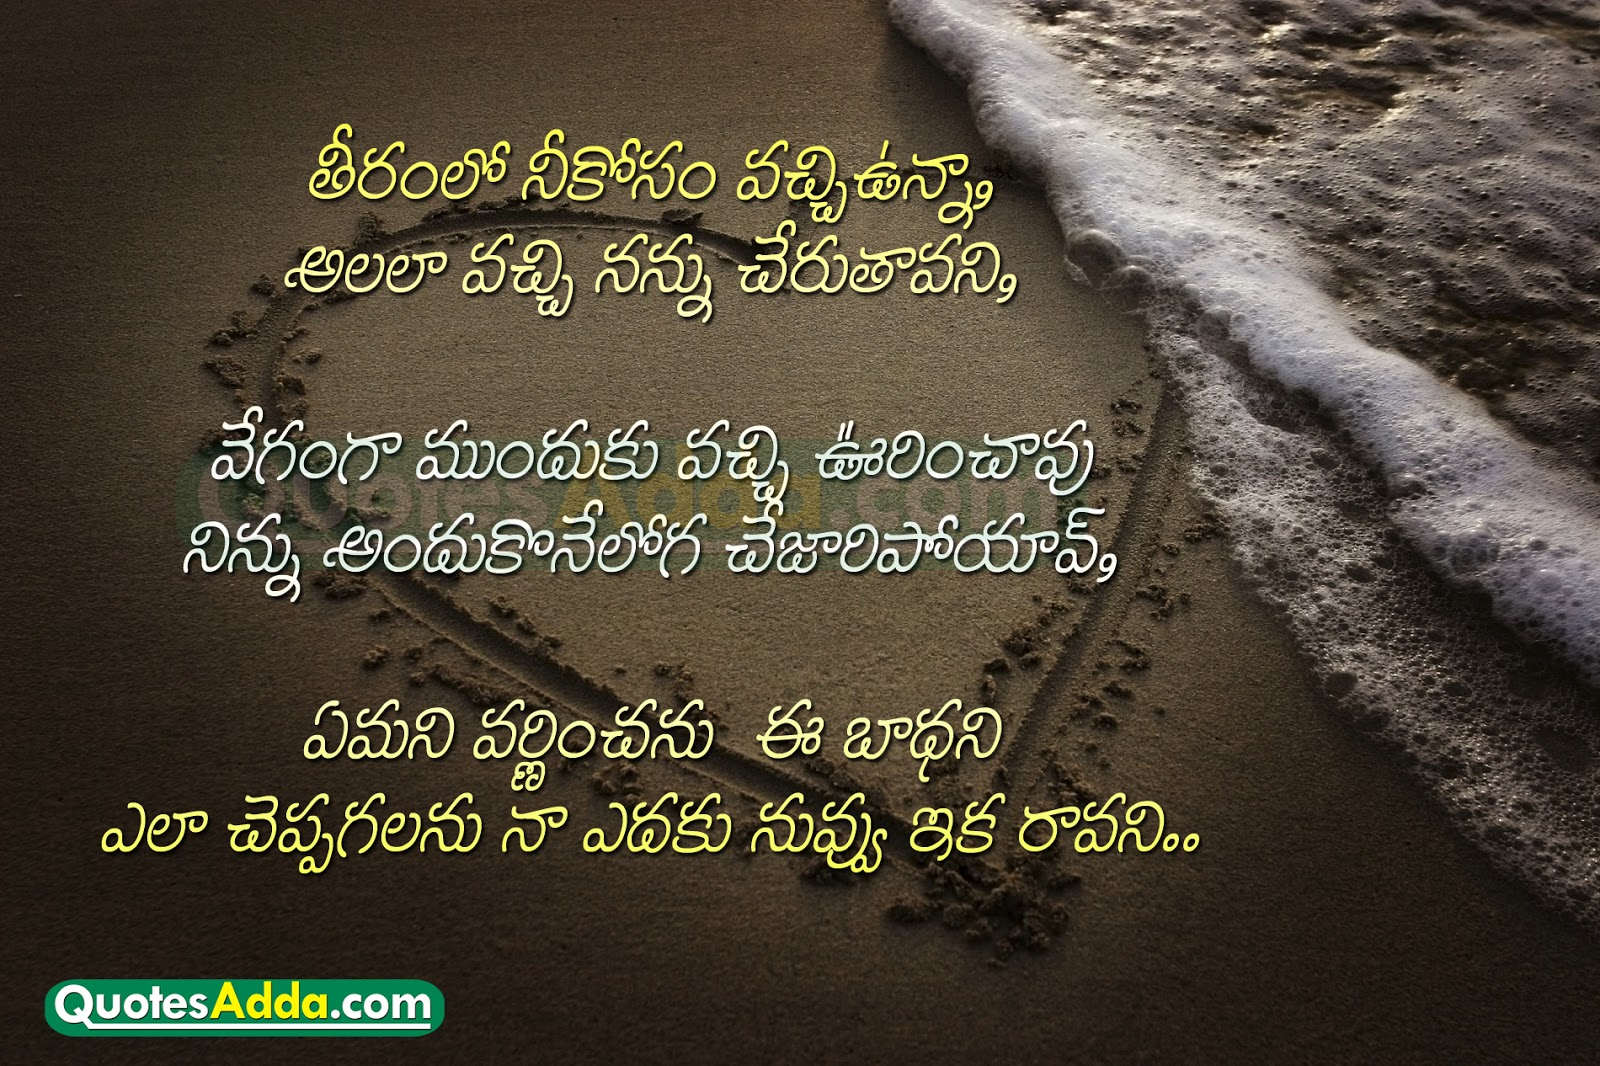 Sad Quotes About Love In Telugu : comAlone Quotations in Telugu - QuotesAdda.com Telugu Quotes